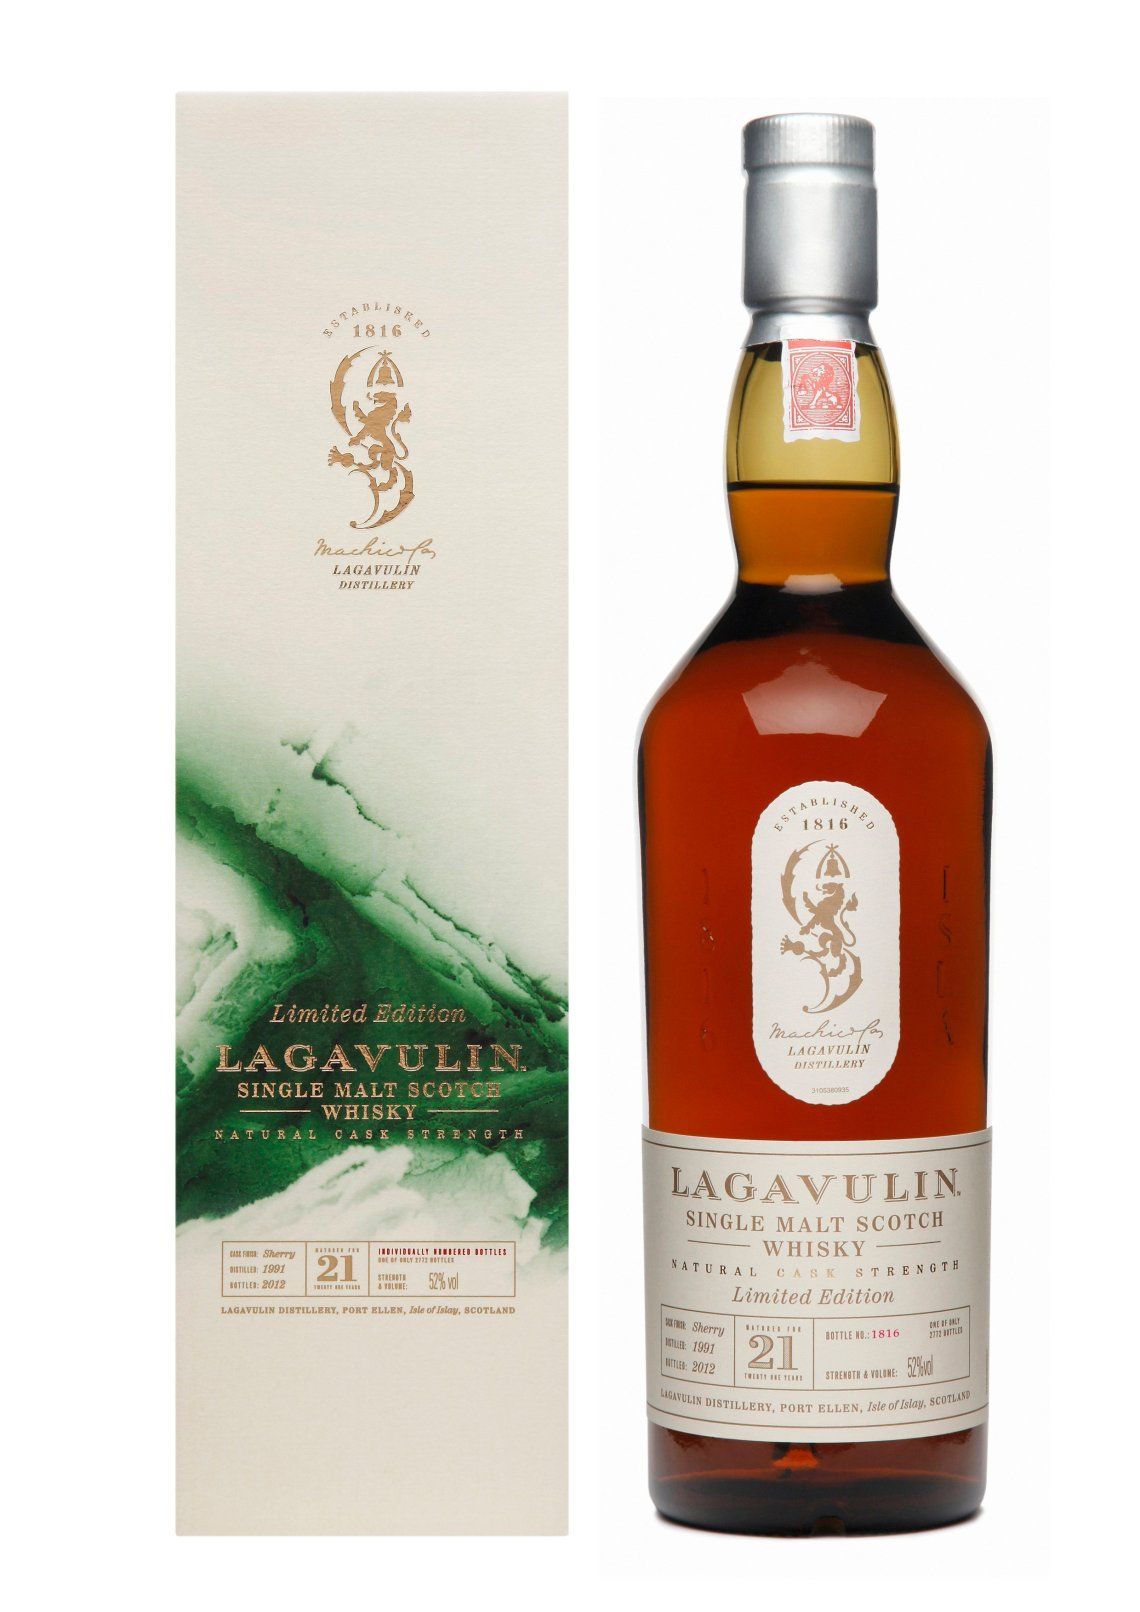 Lagavulin 21 Years Old Limited Edition 2012